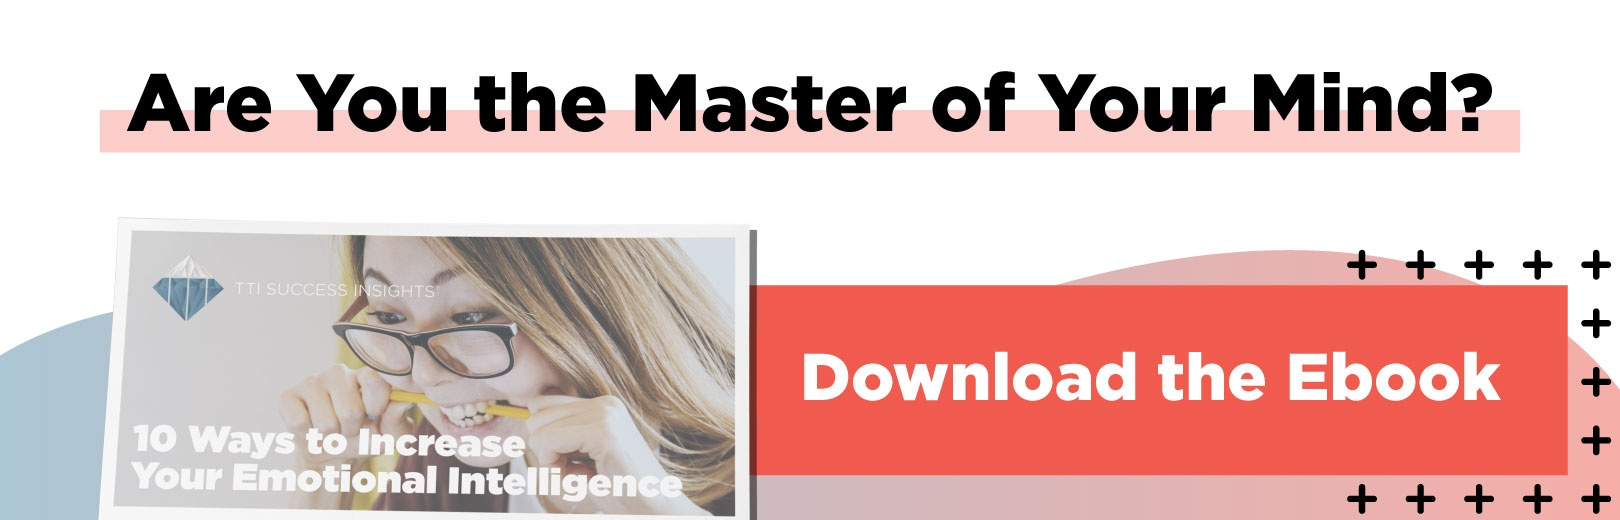 Are You the Master of Your Mind? 10 Ways to Increase Your Emotional Intelligence. Download the Ebook